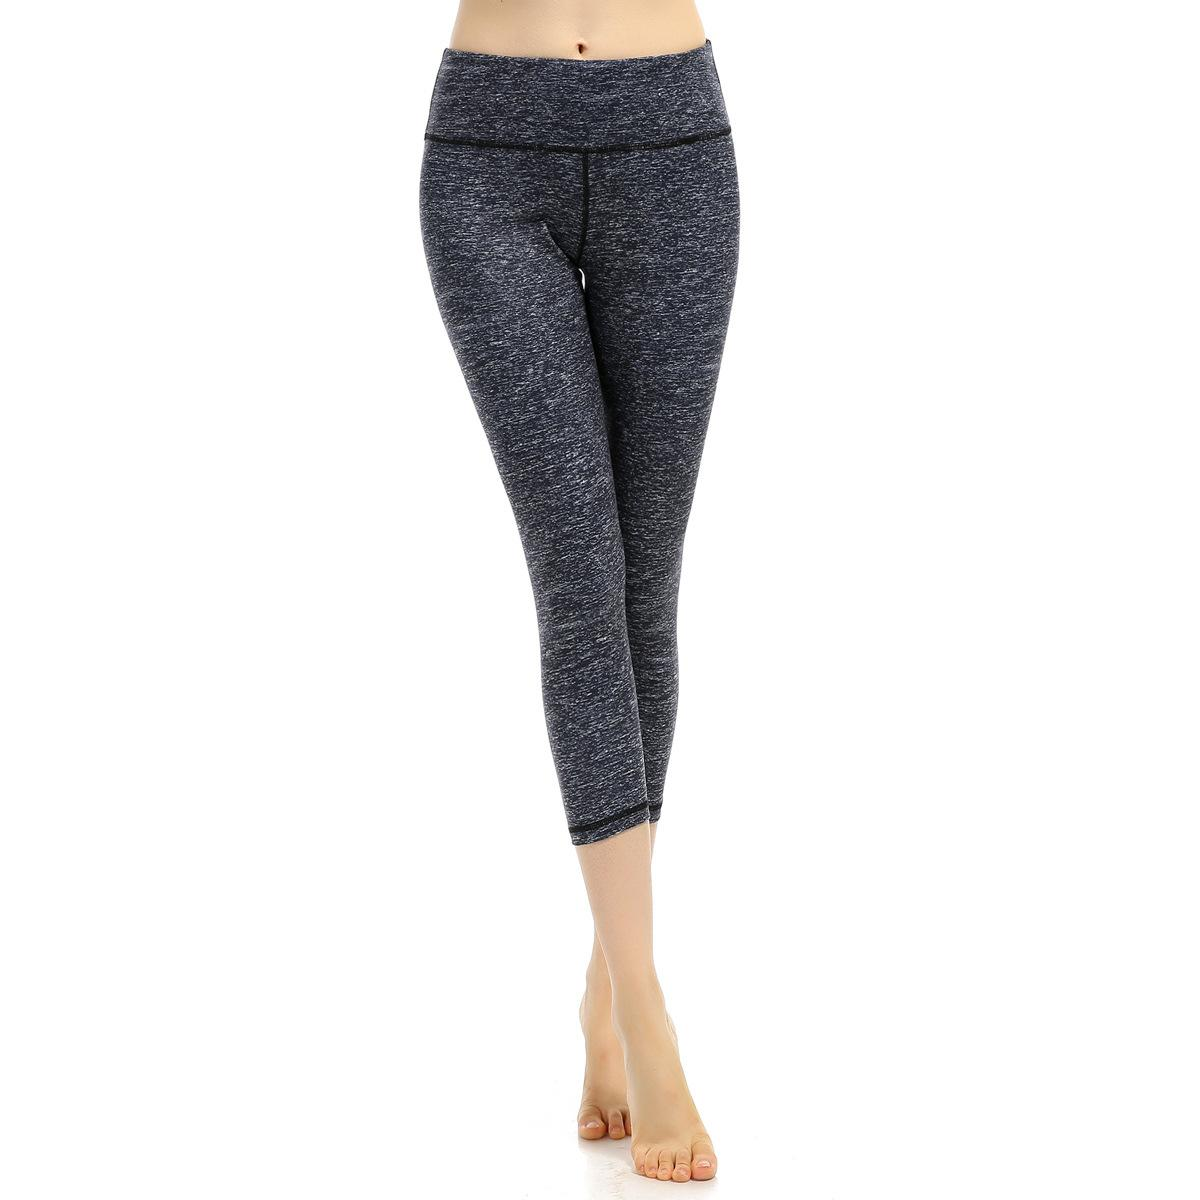 High waist yoga pants sale